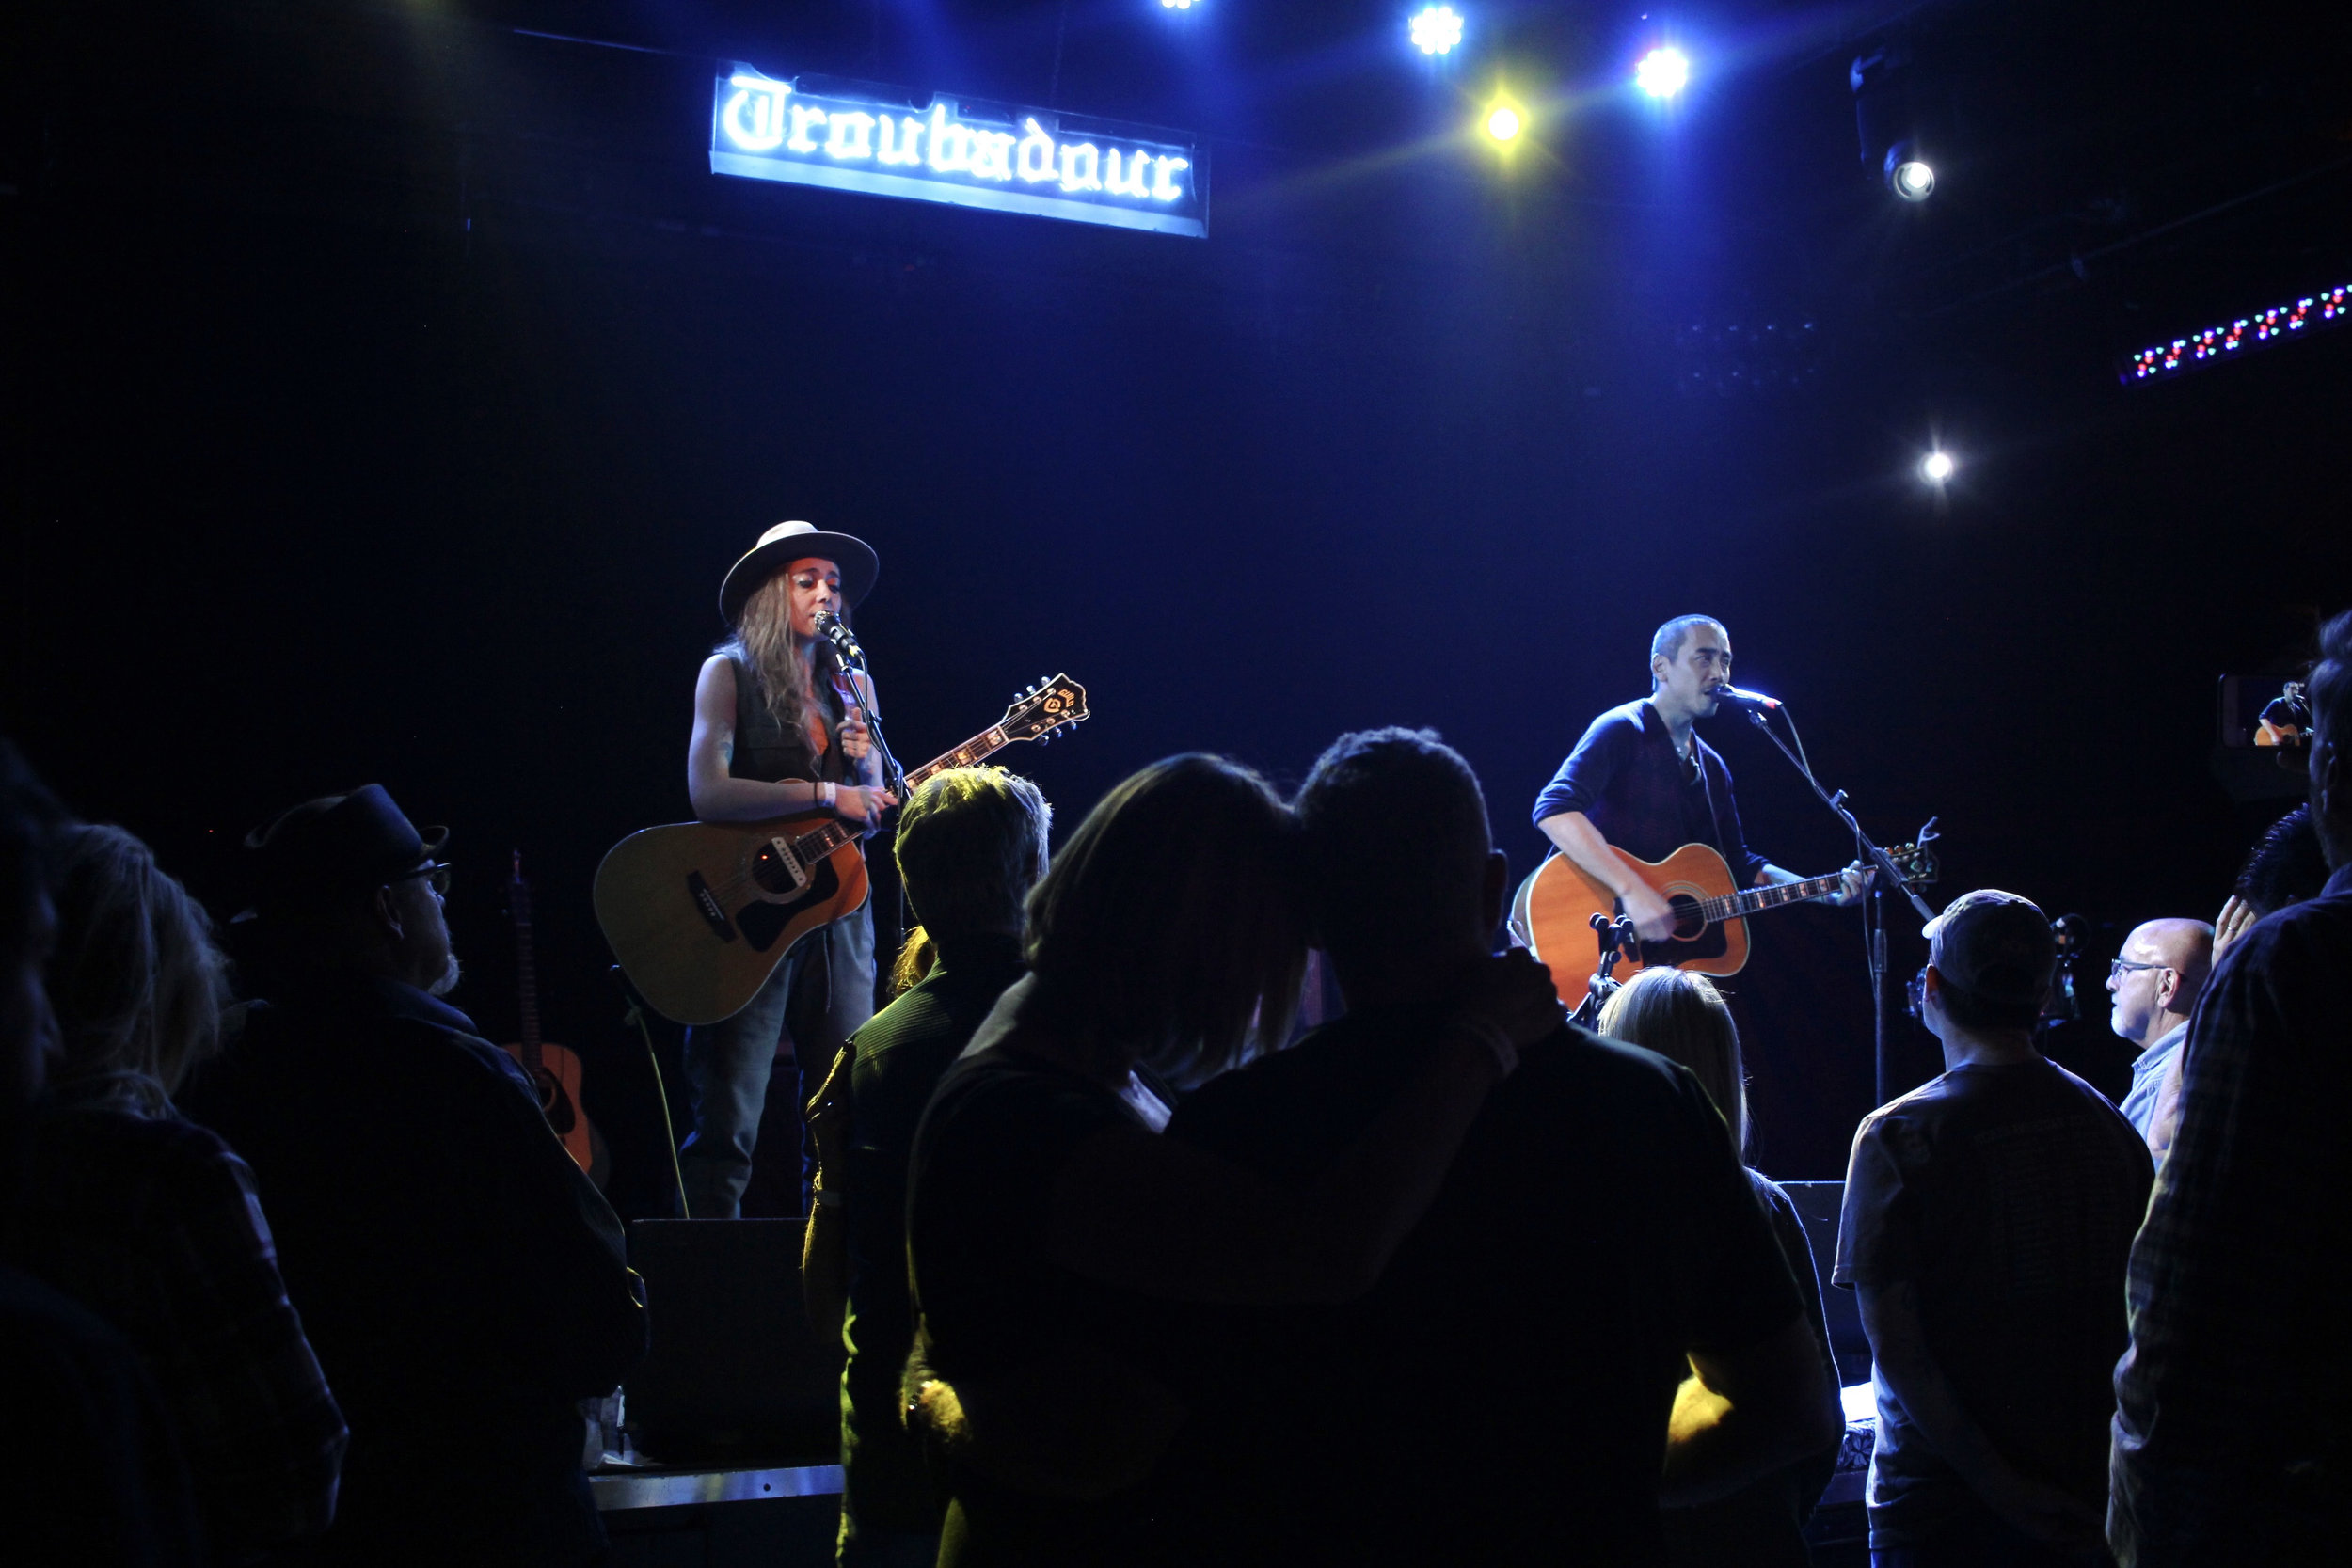 Played the Troubadour with Megan Slankard! Photo by Karen Shih